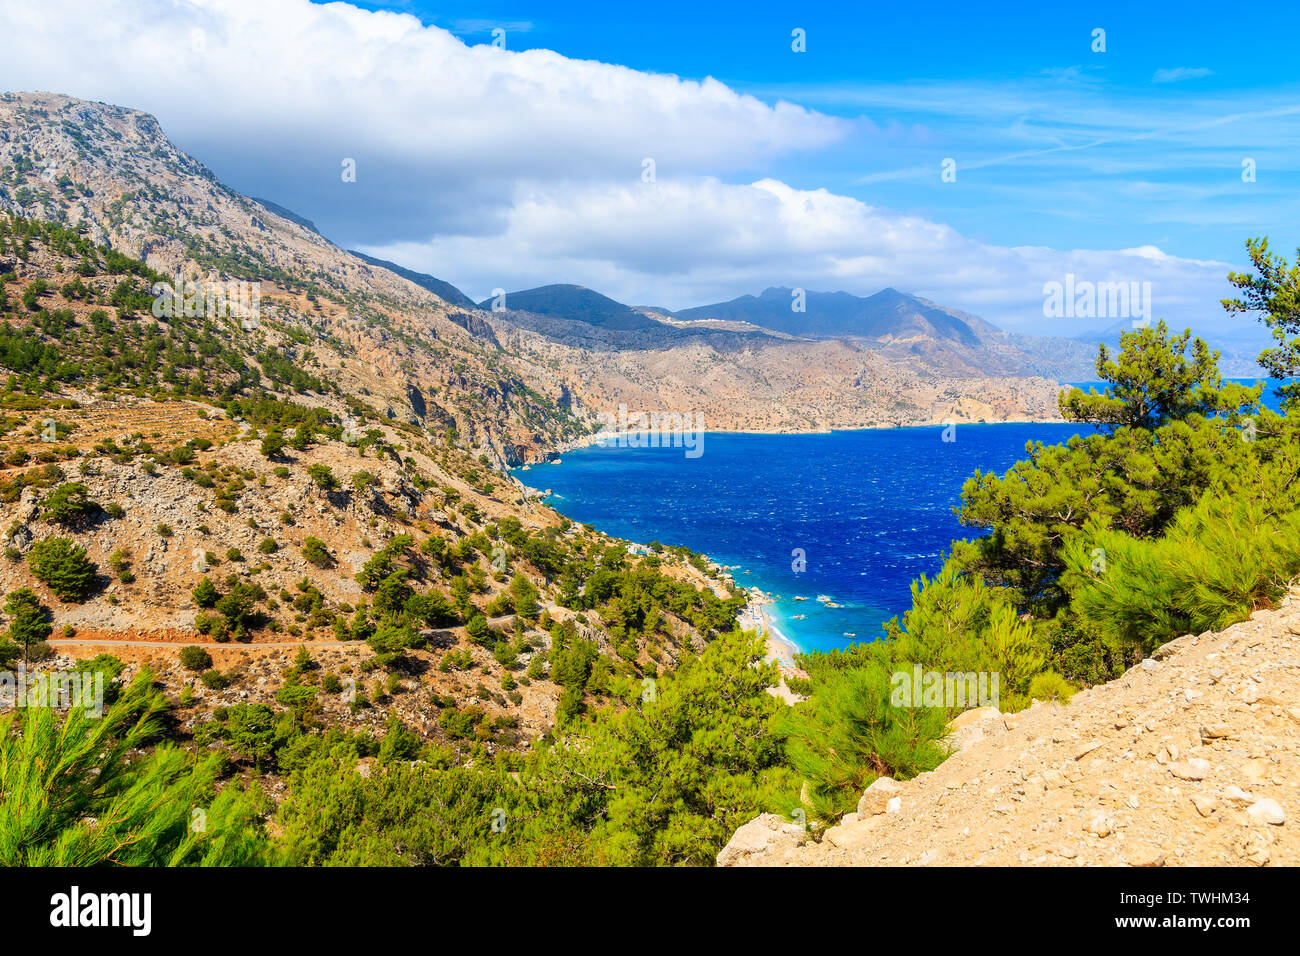 Sea coast of Karpathos island and mountains, Greece Stock Photo